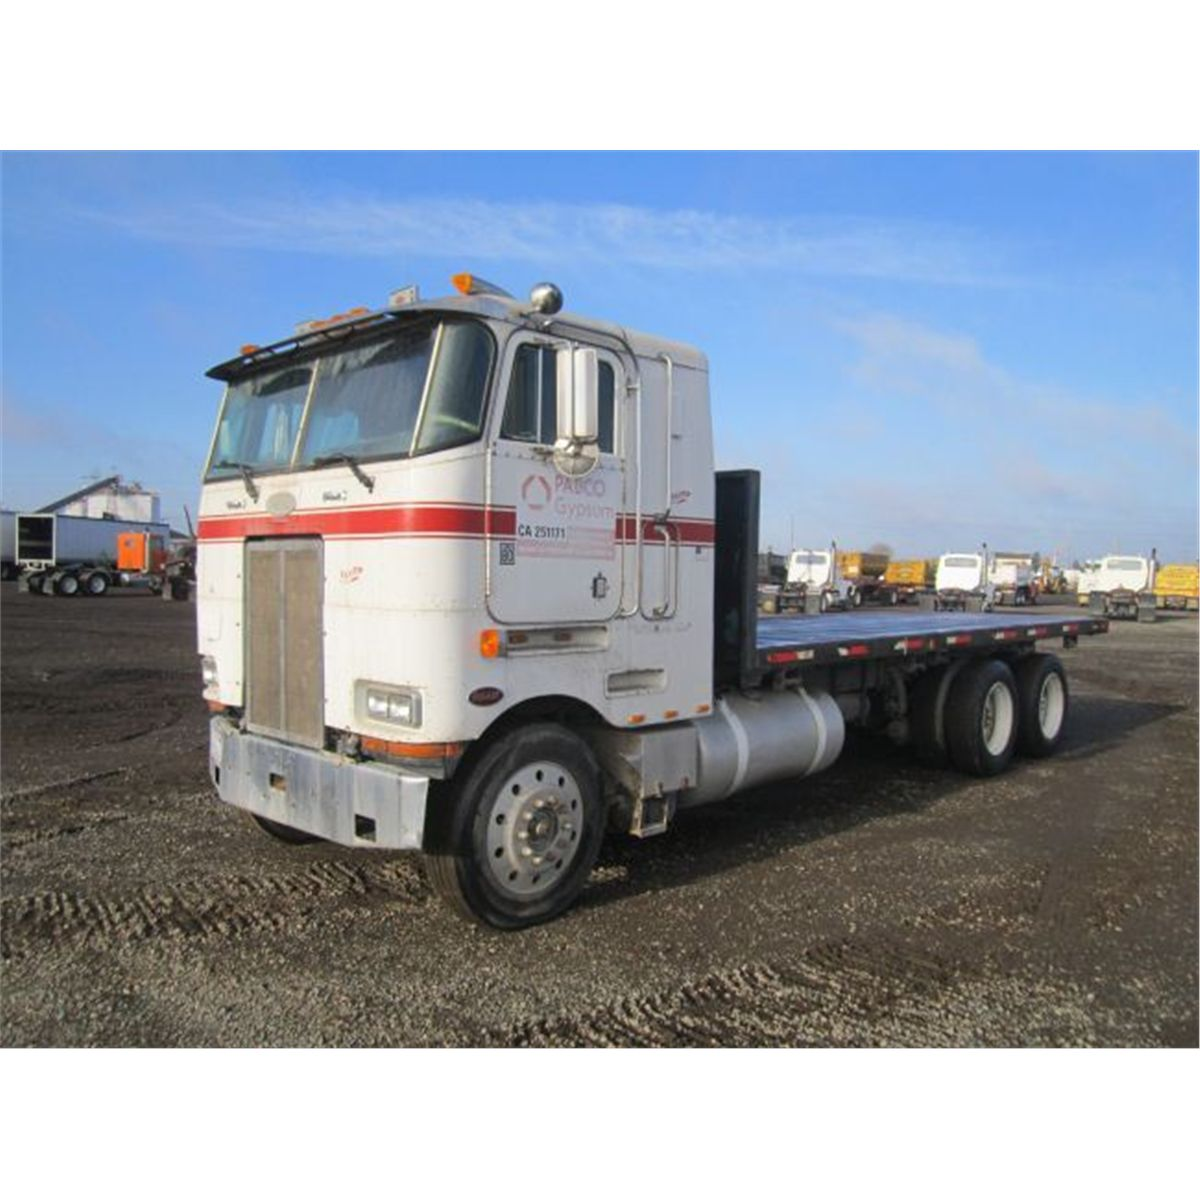 1986 Peterbilt 362 T/A Flatbed Sleeper Truck